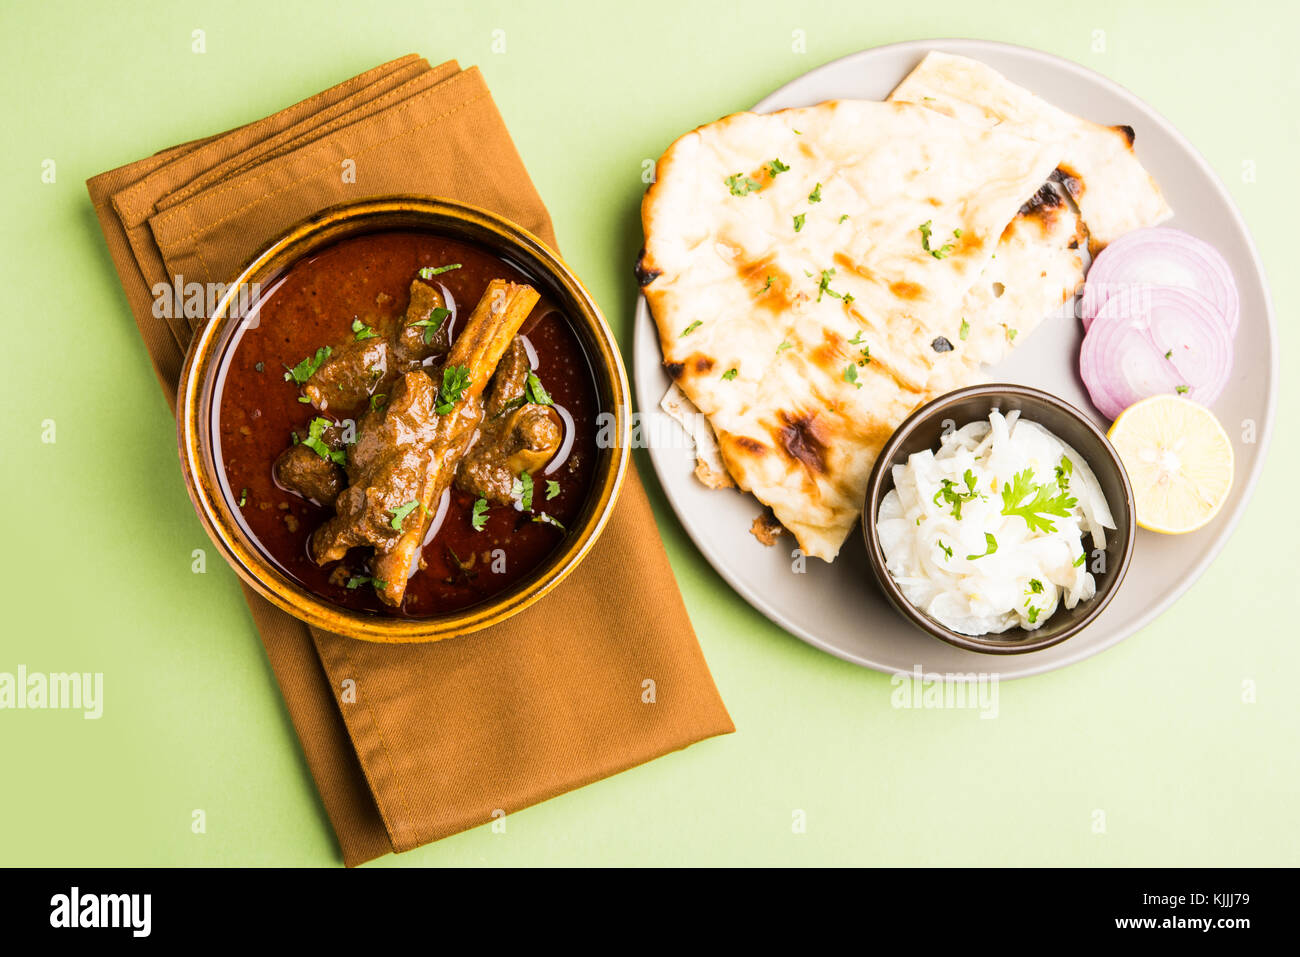 Mutton Masala Or Masala Gosht or indian lamb rogan josh with some seasoning, served with Naan or Roti, selective - Stock Image